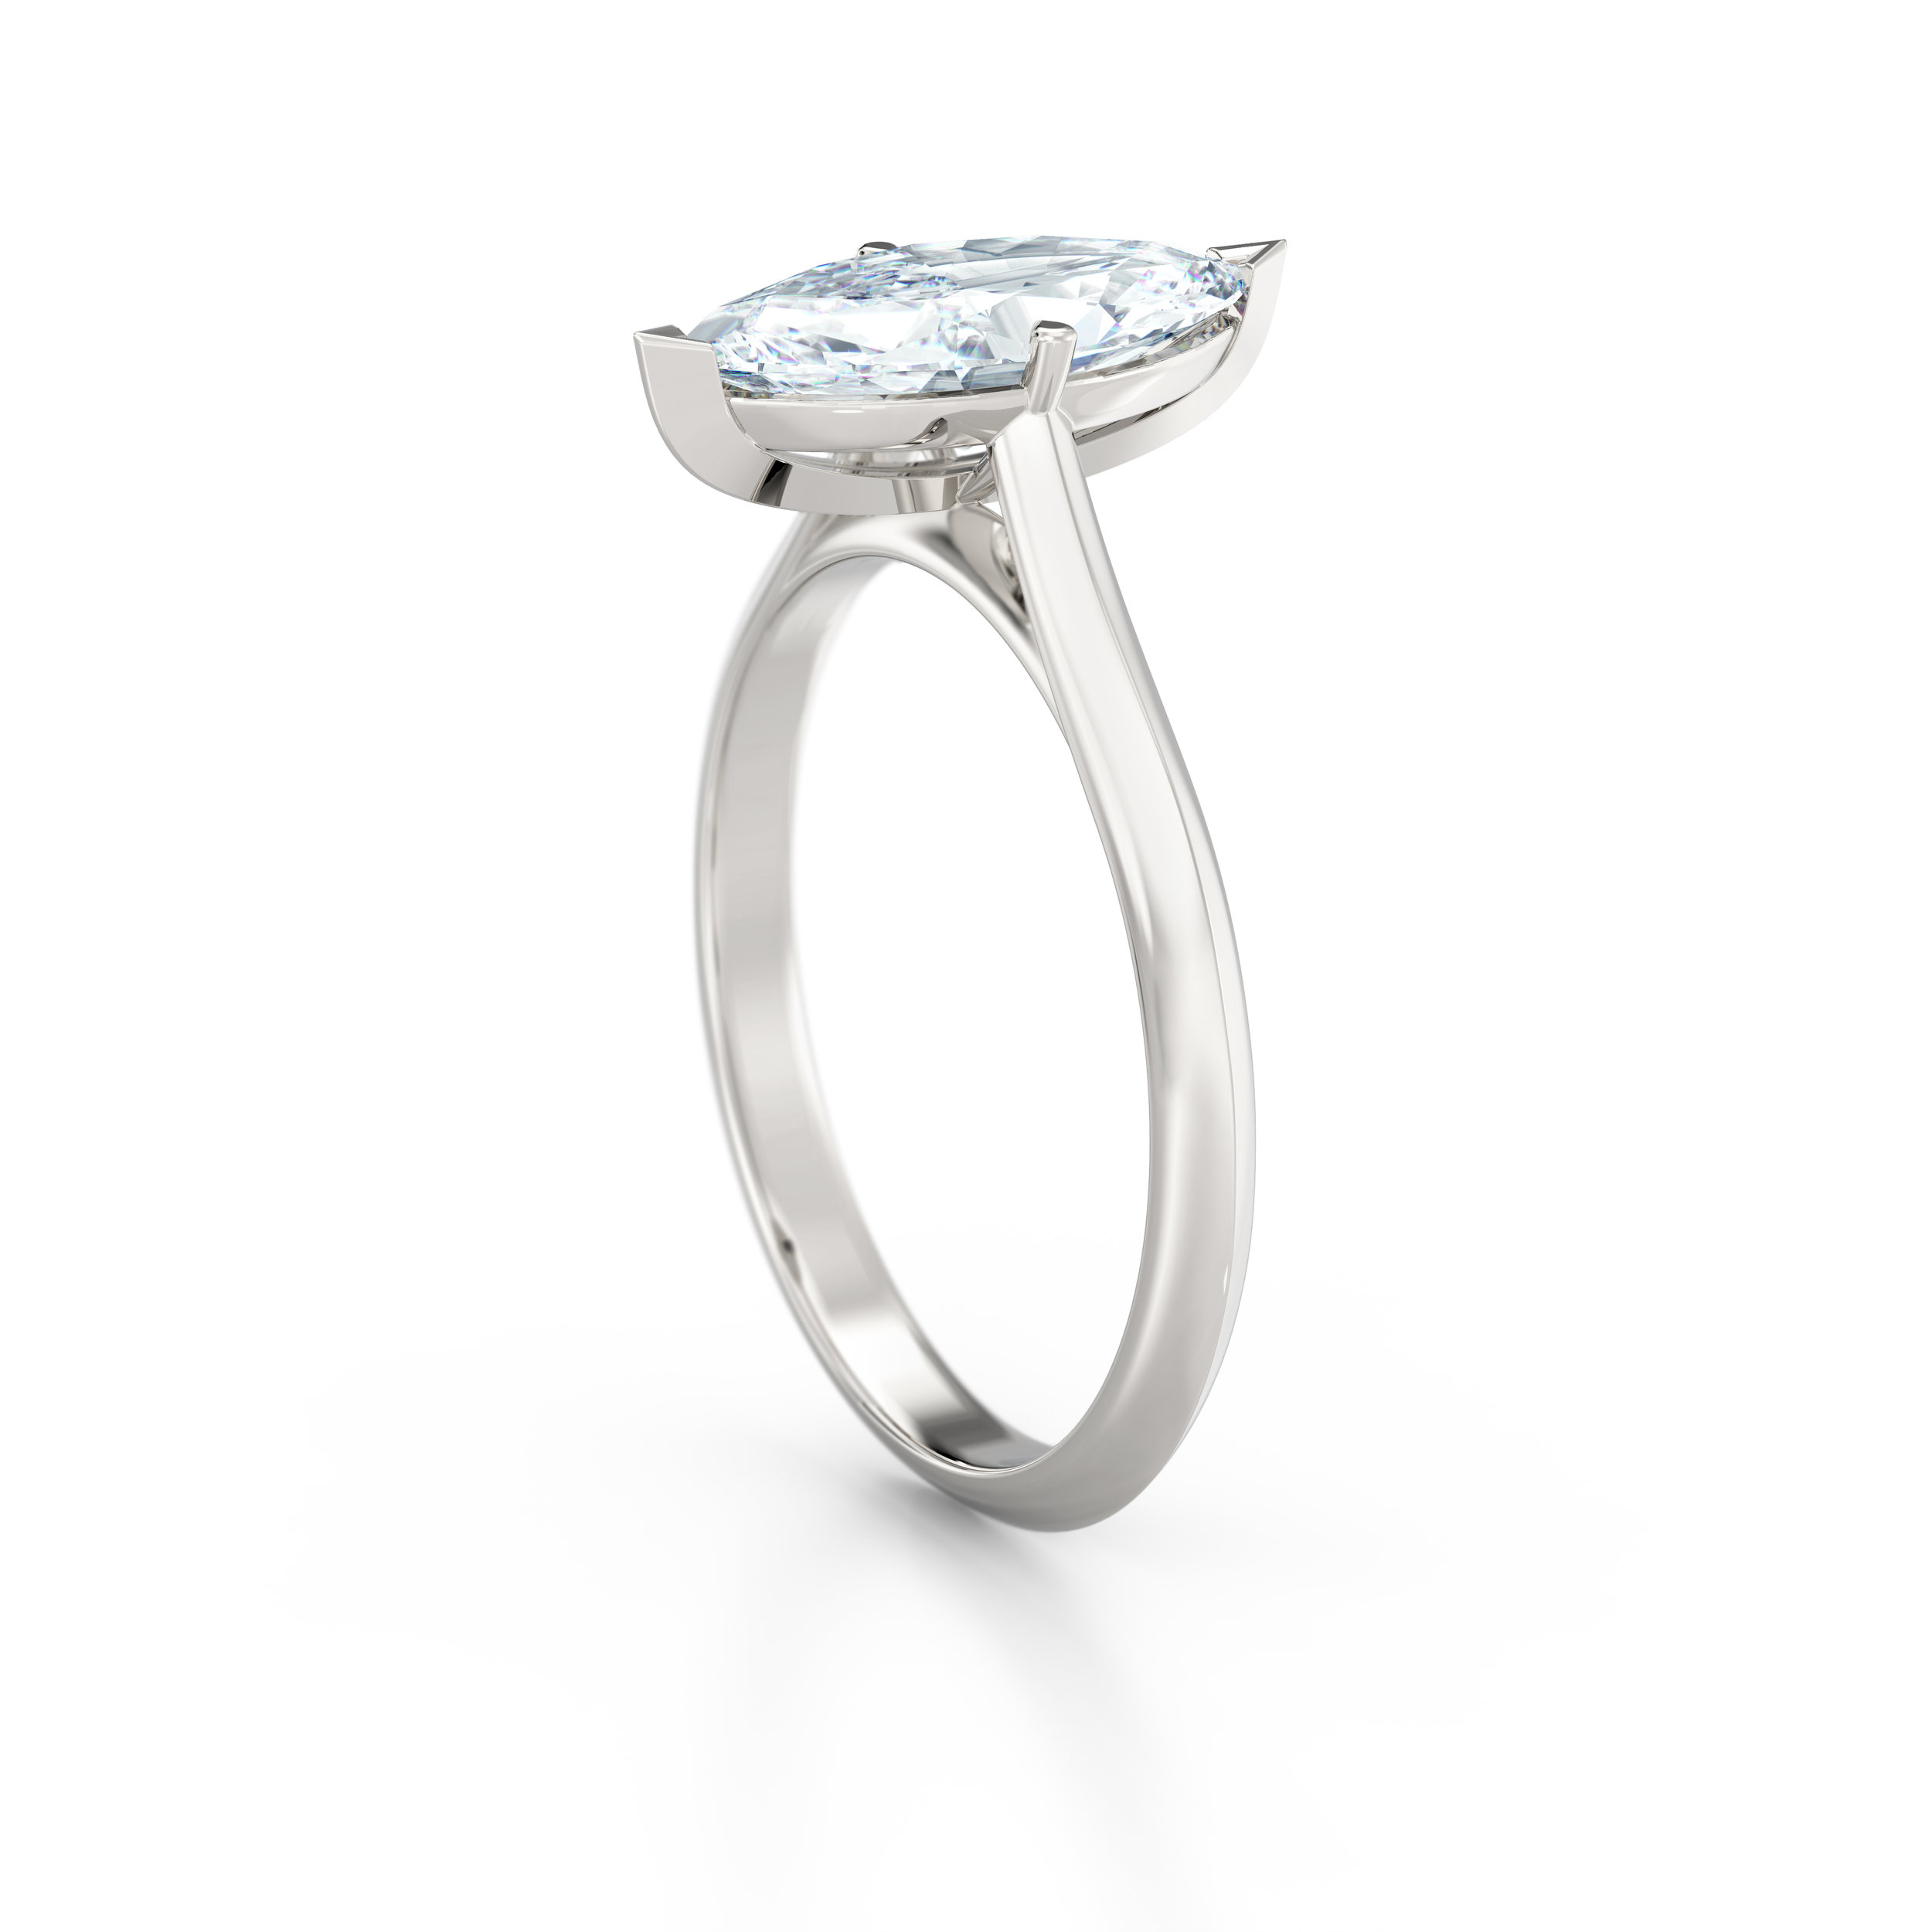 Marquise Cut Solitaire Engagement Ring | Hatton Garden